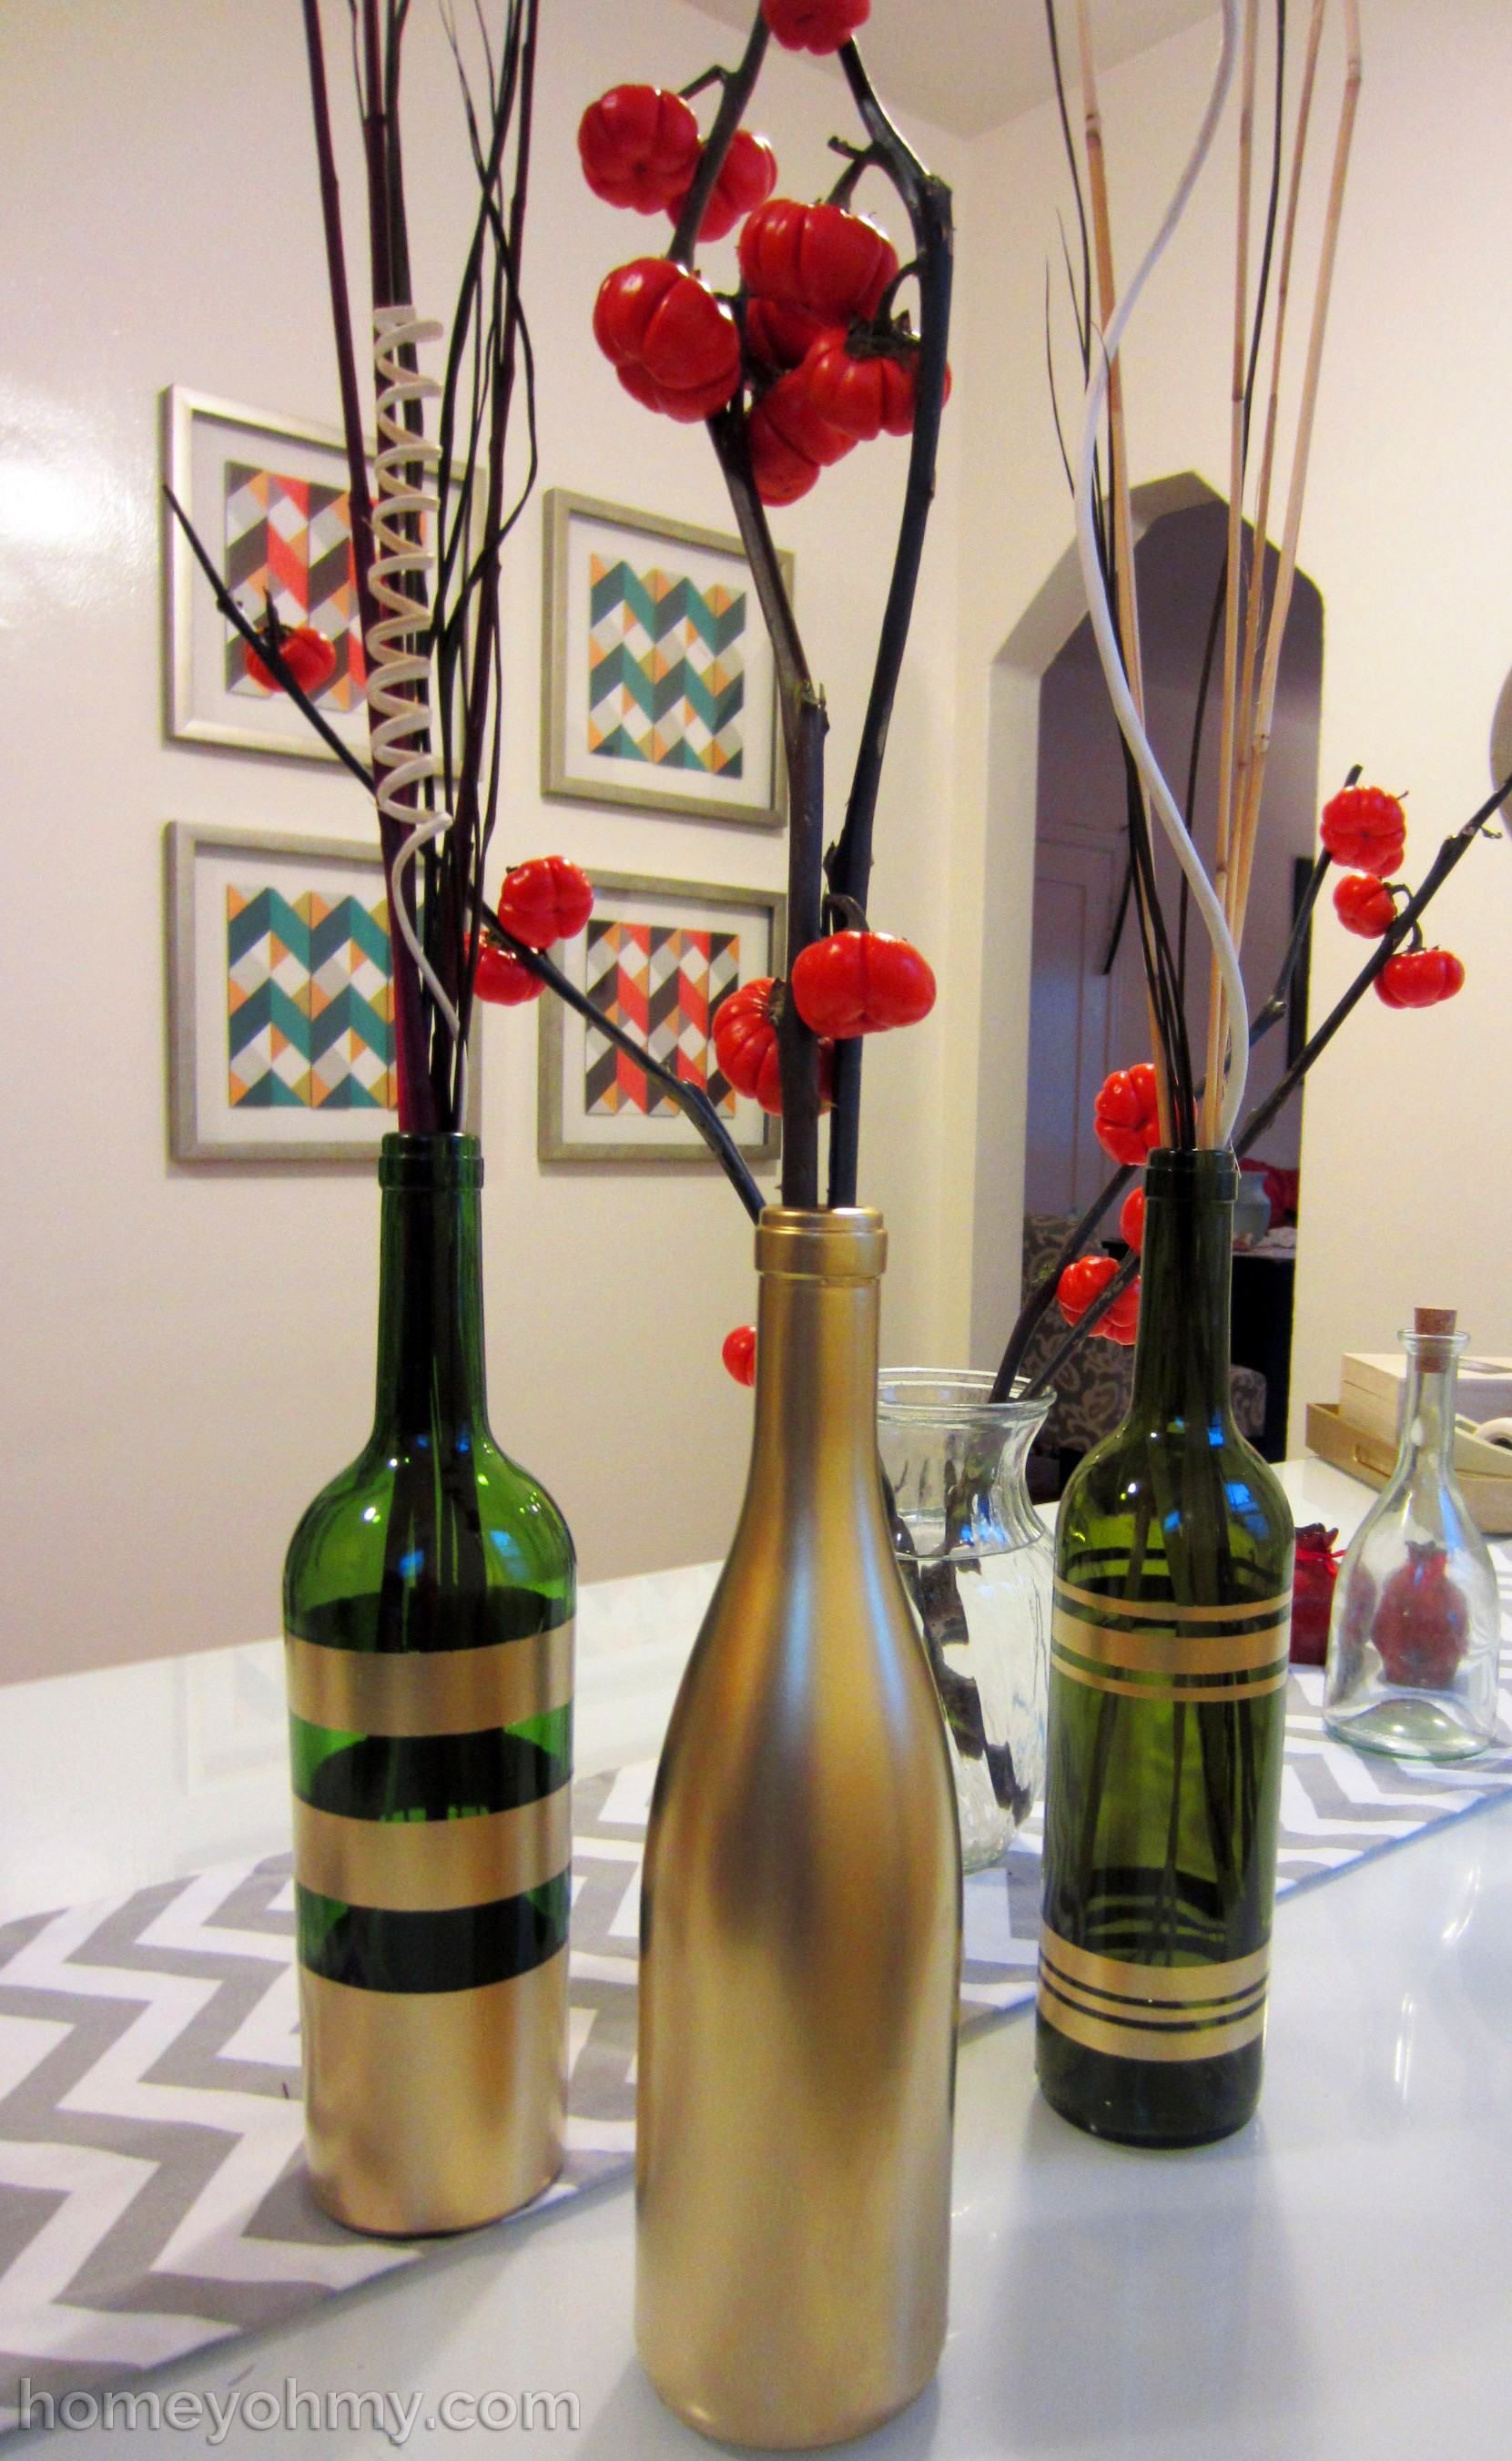 DIY Spray Painted Wine Bottles for Fall Decorating - Homey Oh My